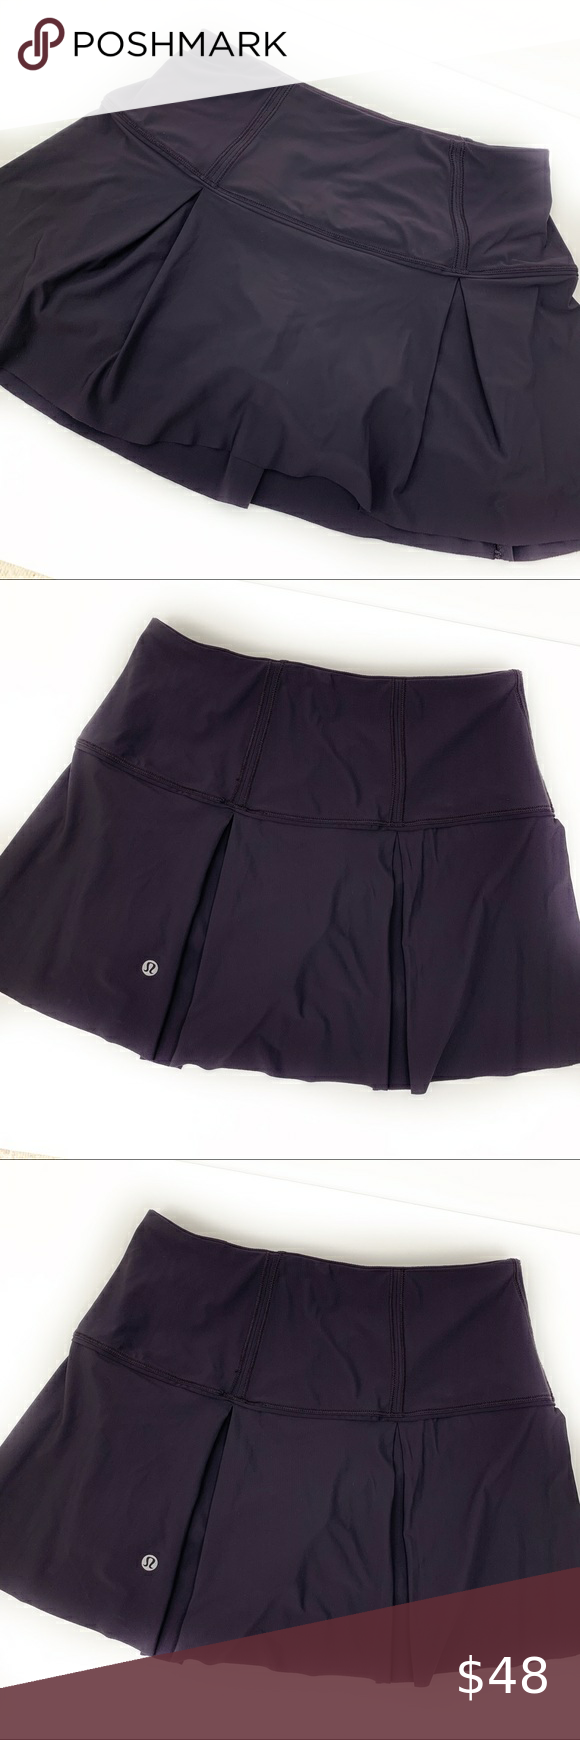 """Lululemon Lost In Pace Navy Skirt Skort Lululemon Lost In Pace Navy Skirt Skort Size: 4 Gently used, great condition.  Measurements are approximate and taken flat.  Waist: 12 1/2"""" Inseam: 3""""  #0023 lululemon athletica Shorts Skorts"""